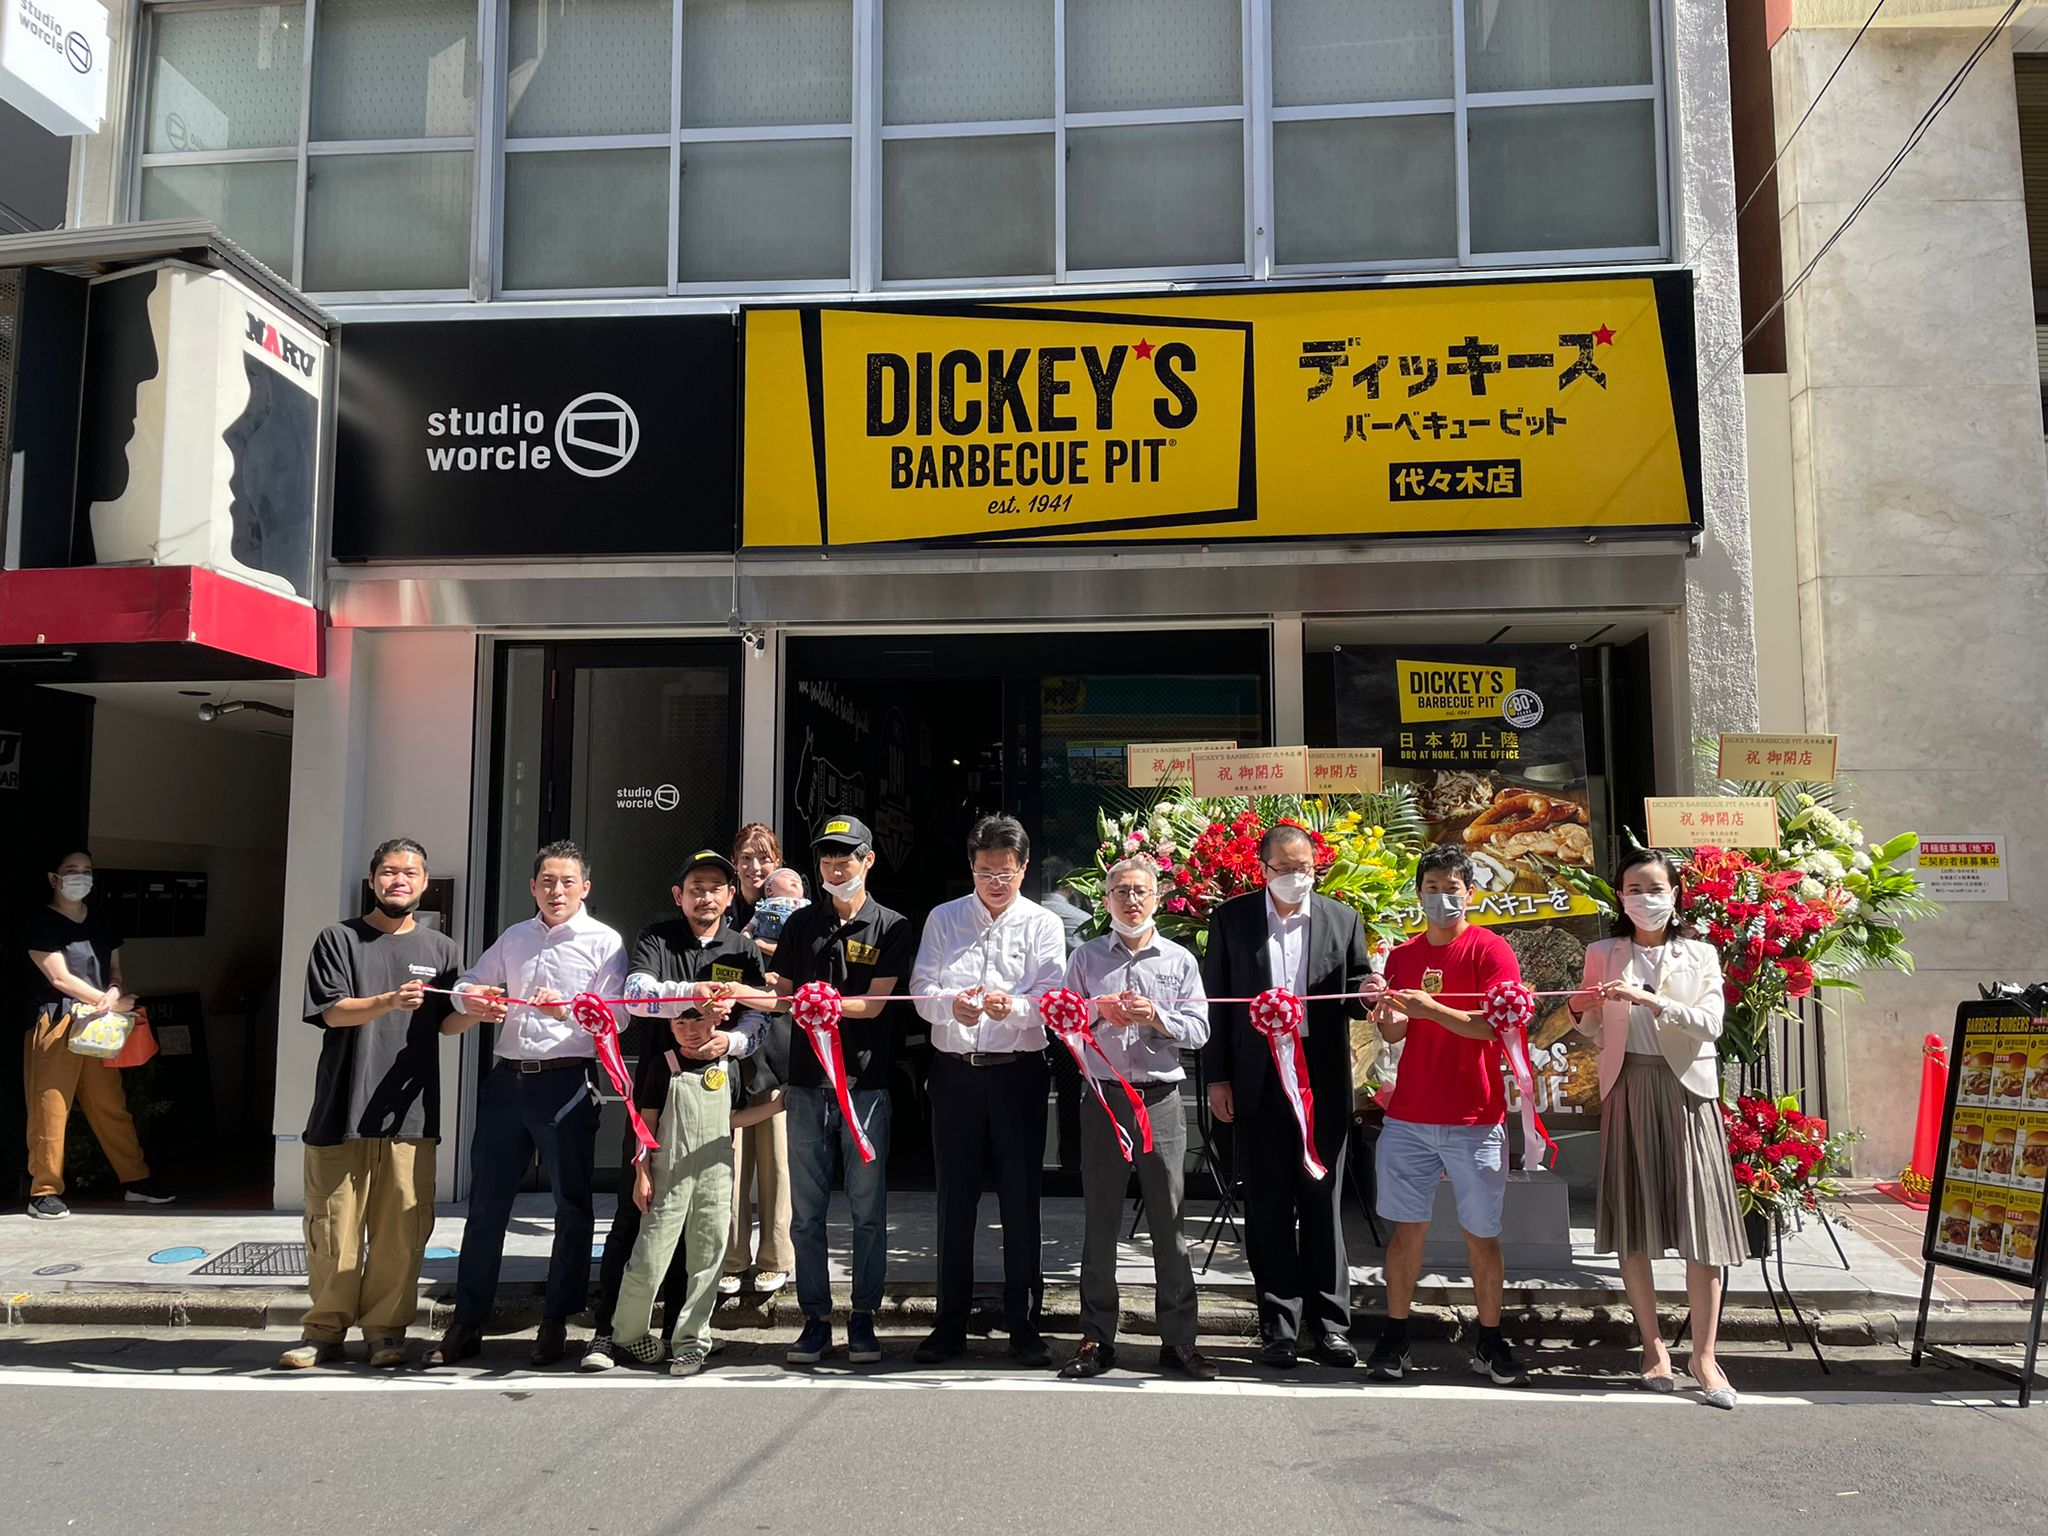 Dickey's Barbecue Pit opens second location in Yoyogi, Tokyo is Open.